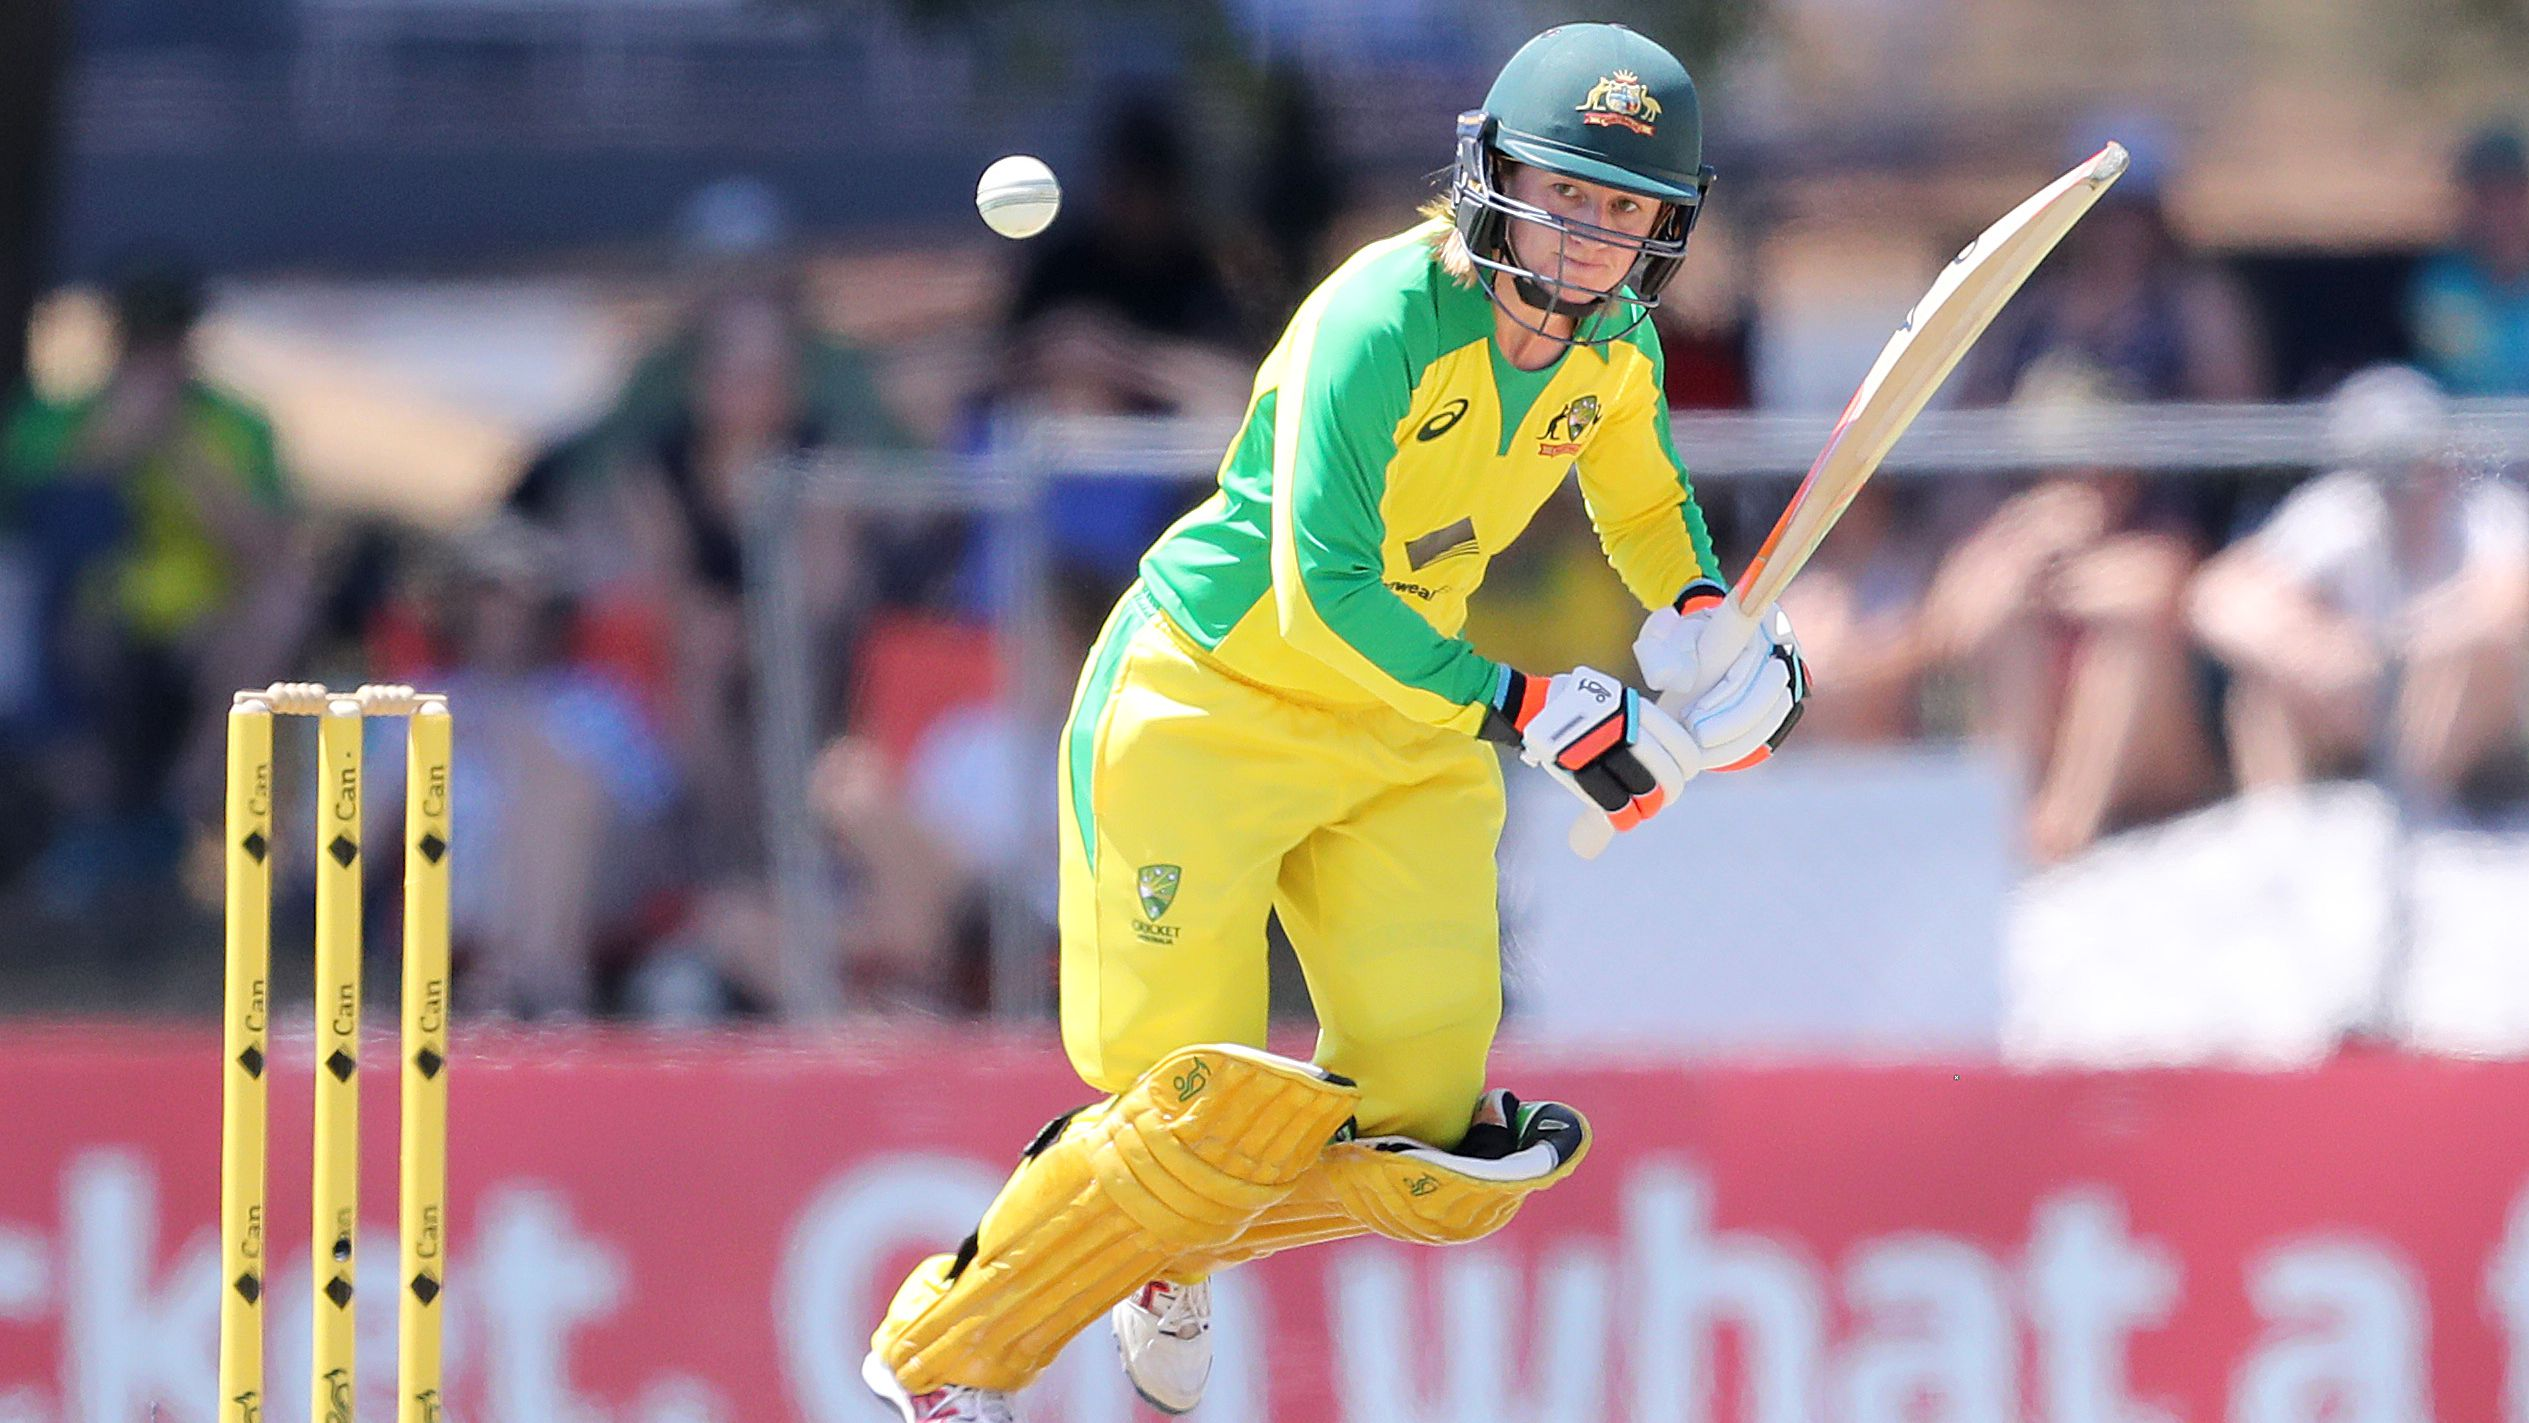 The Australia v India women's cricket ODI series has been postponed due to COVID-19